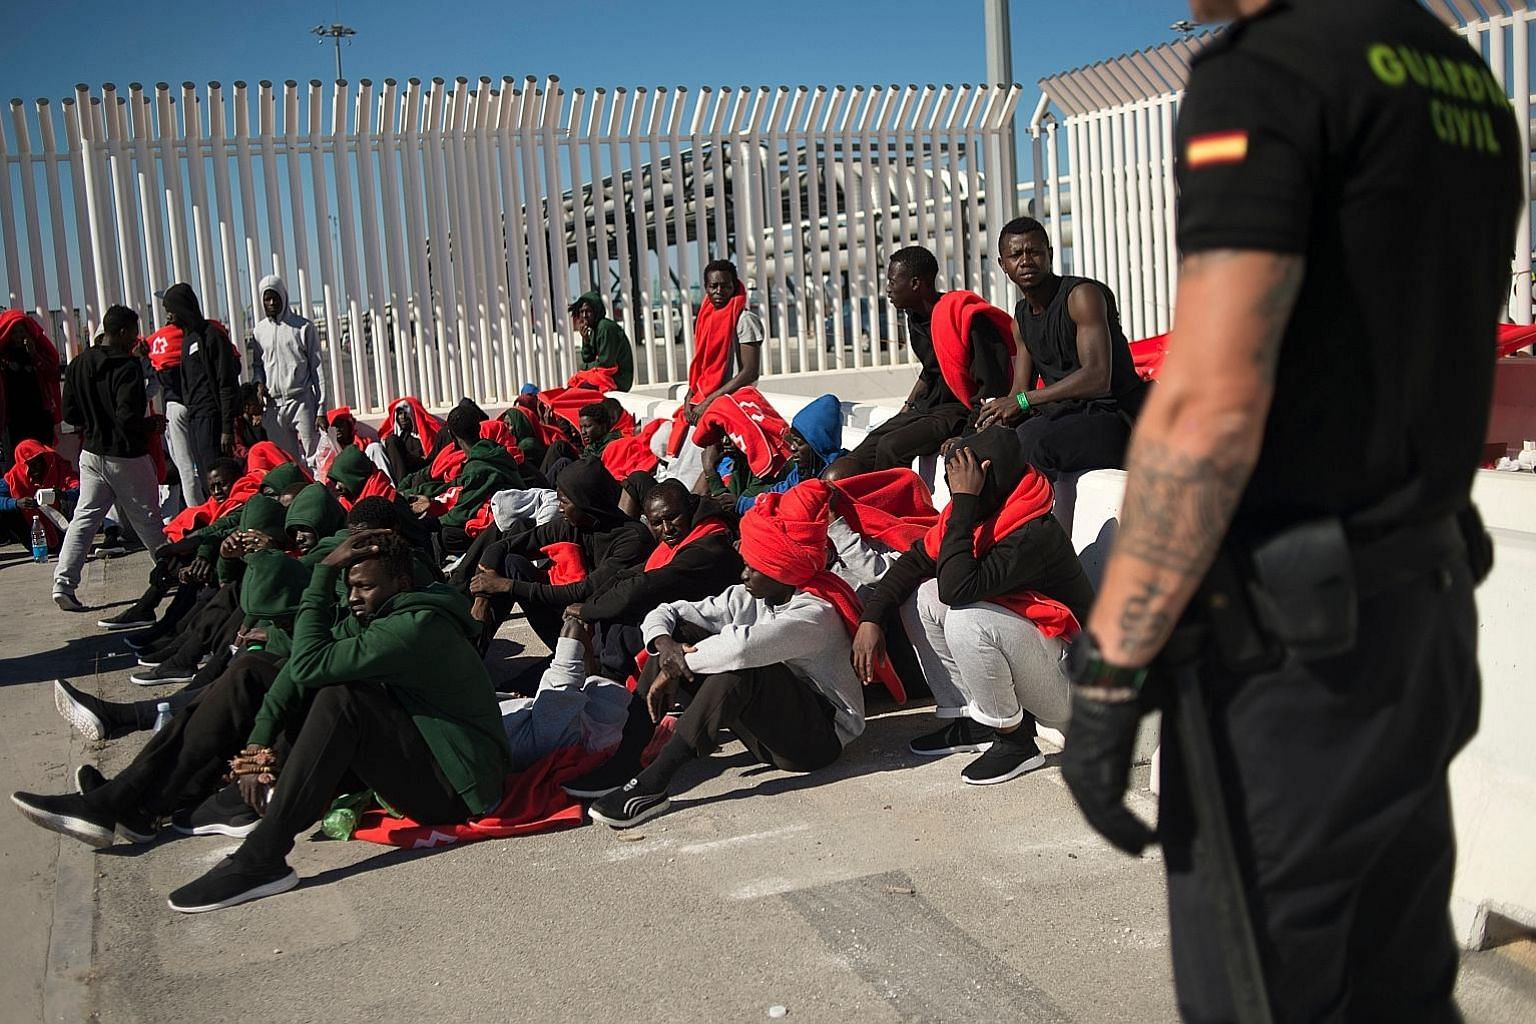 Spain has overtaken Italy as the preferred destination for migrant arrivals in Europe this year as a crackdown by Libyan authorities has made it more difficult for them to reach Italian shores. Spain has seen 24,000 arrivals in the first half of the